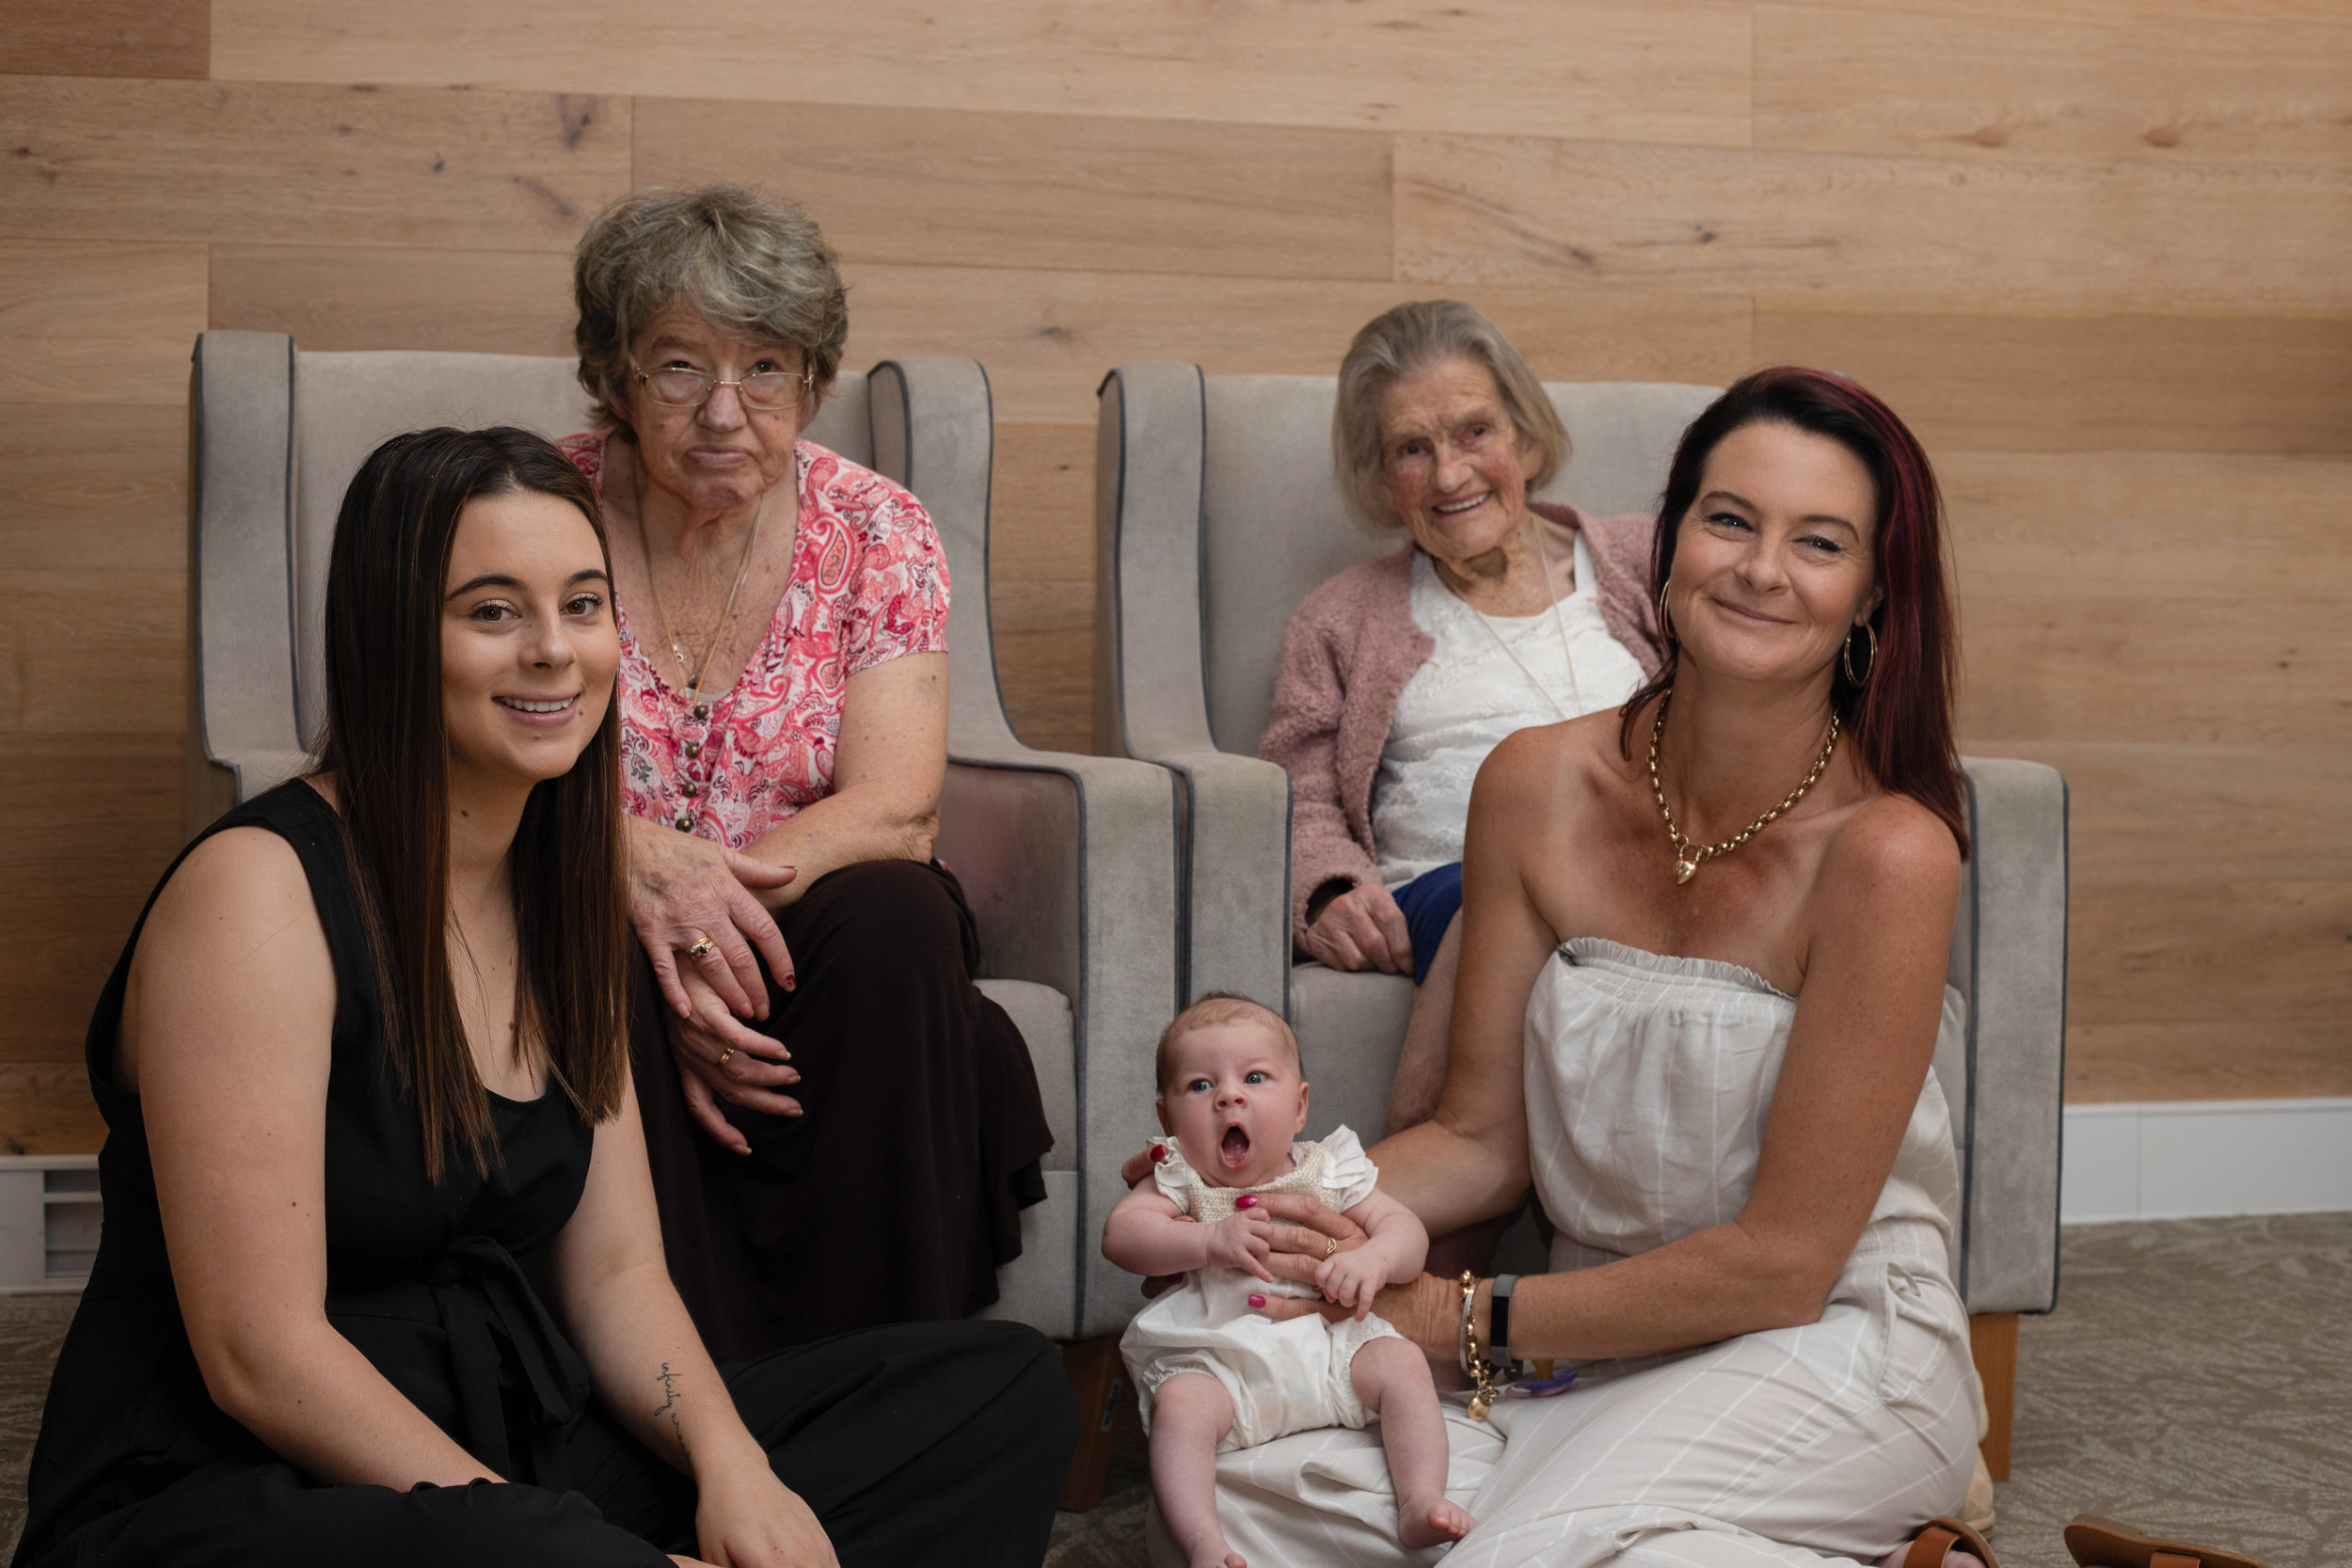 4 strong determined women. The youngest has quite the legacy to live unto. 5 generations of first born girls. This was taken in a nursing home in Bowral.